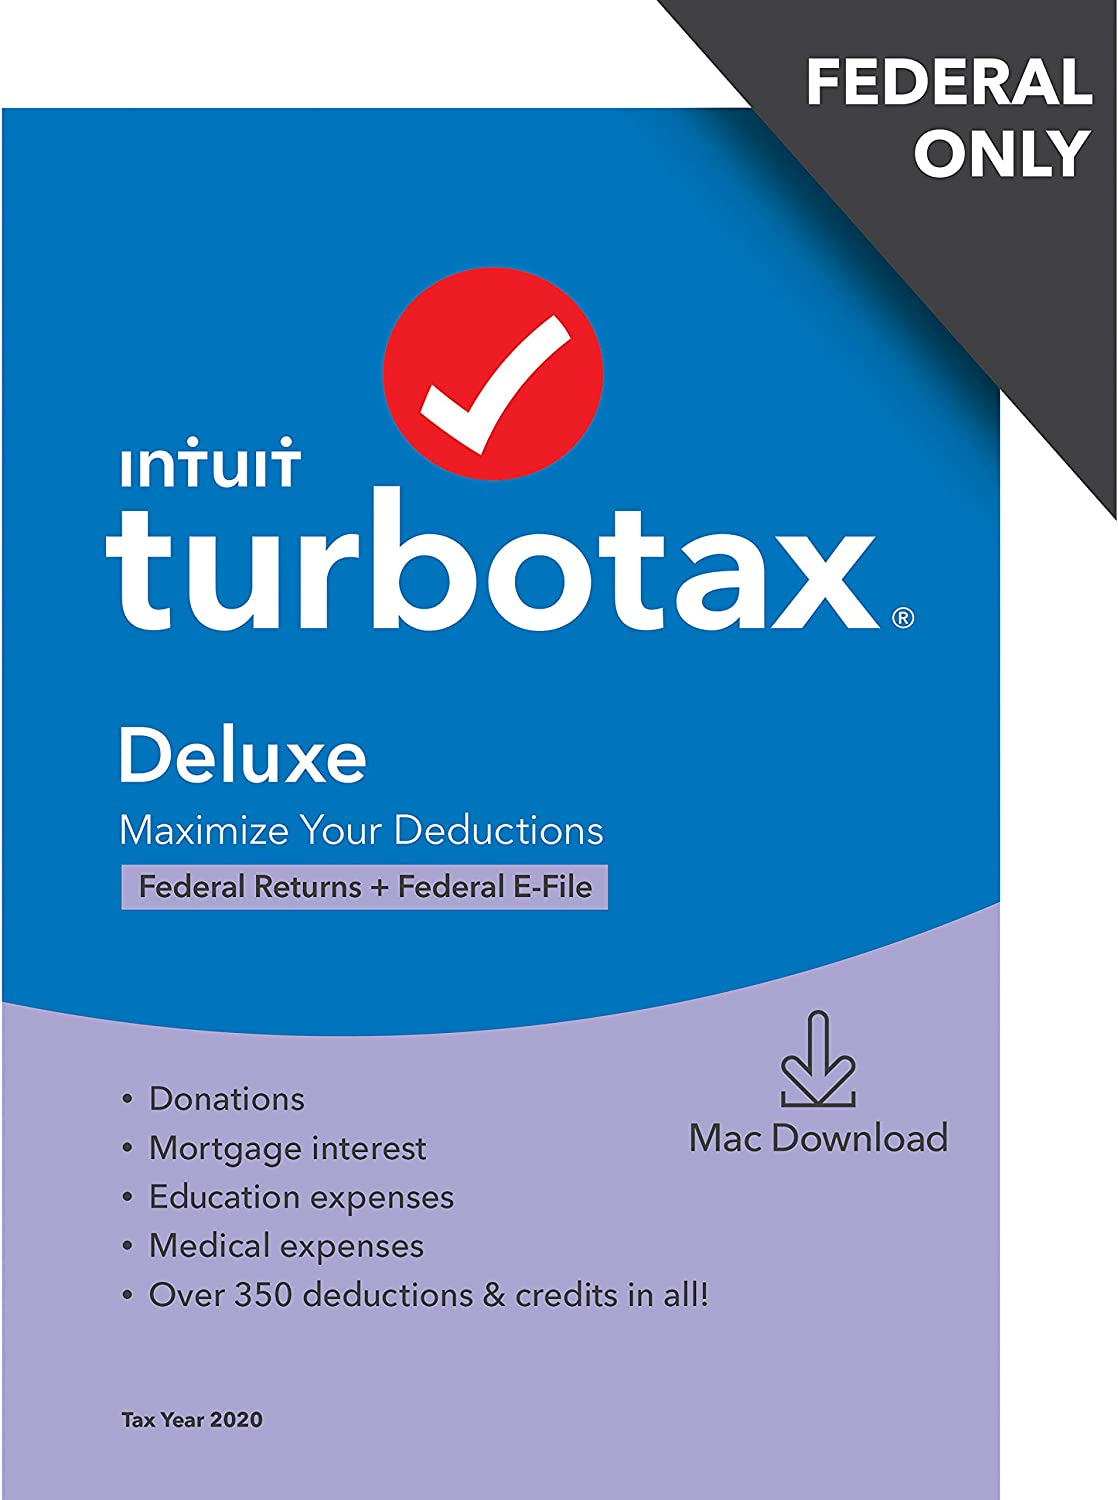 TurboTax Deluxe 2020 Desktop Tax Software, Federal Returns Only + Federal E-file [Amazon Exclusive] [MAC Download]